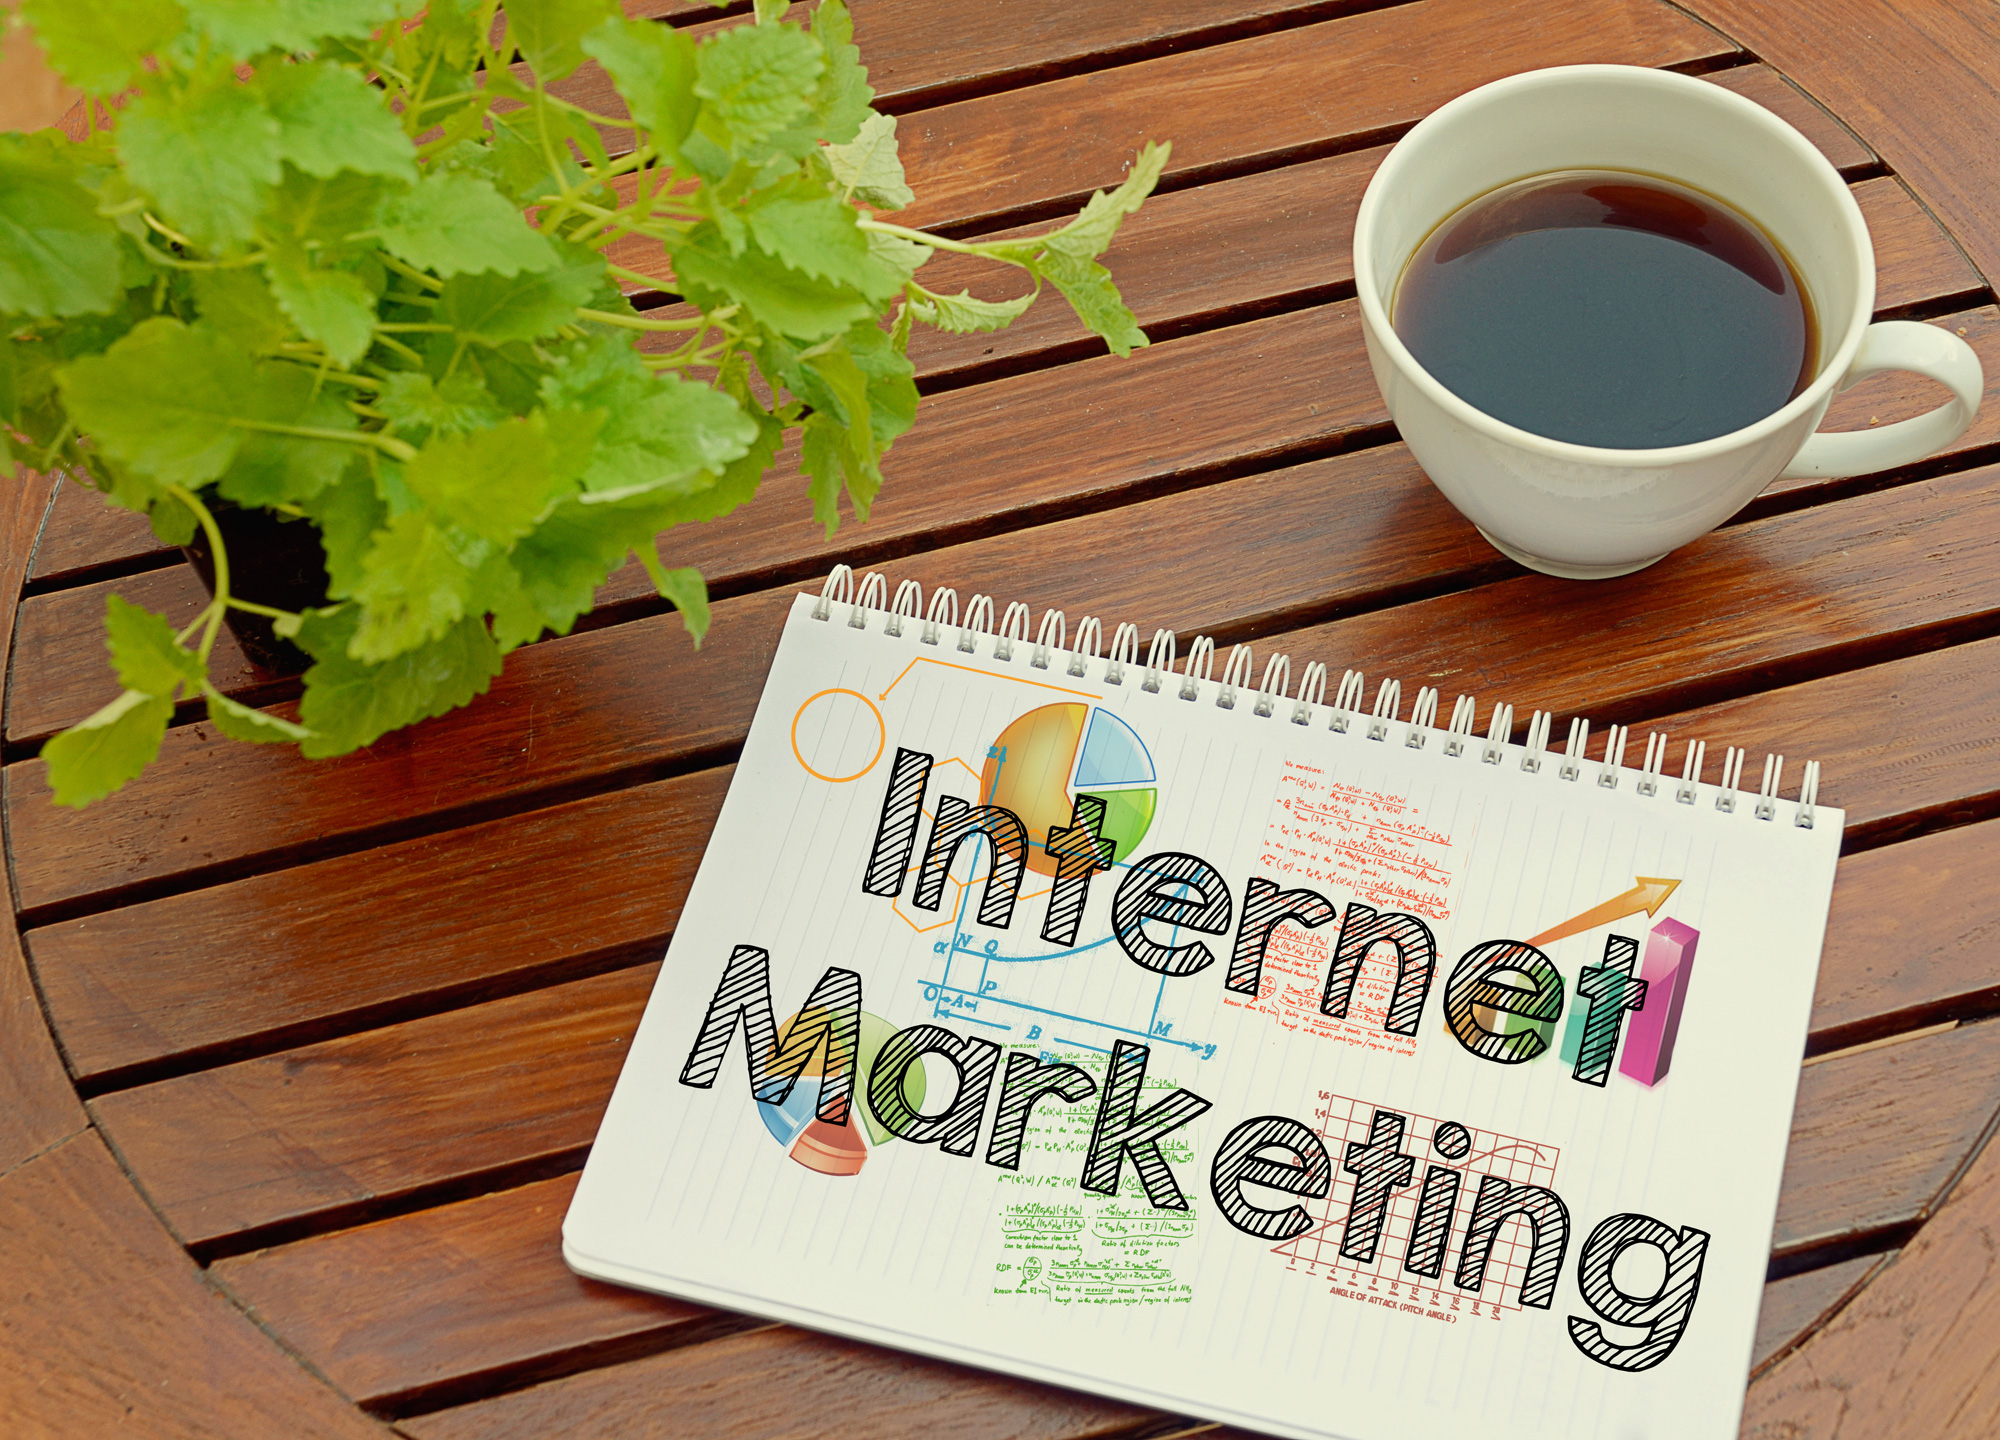 Does Your Business Need a Marketing Agency?